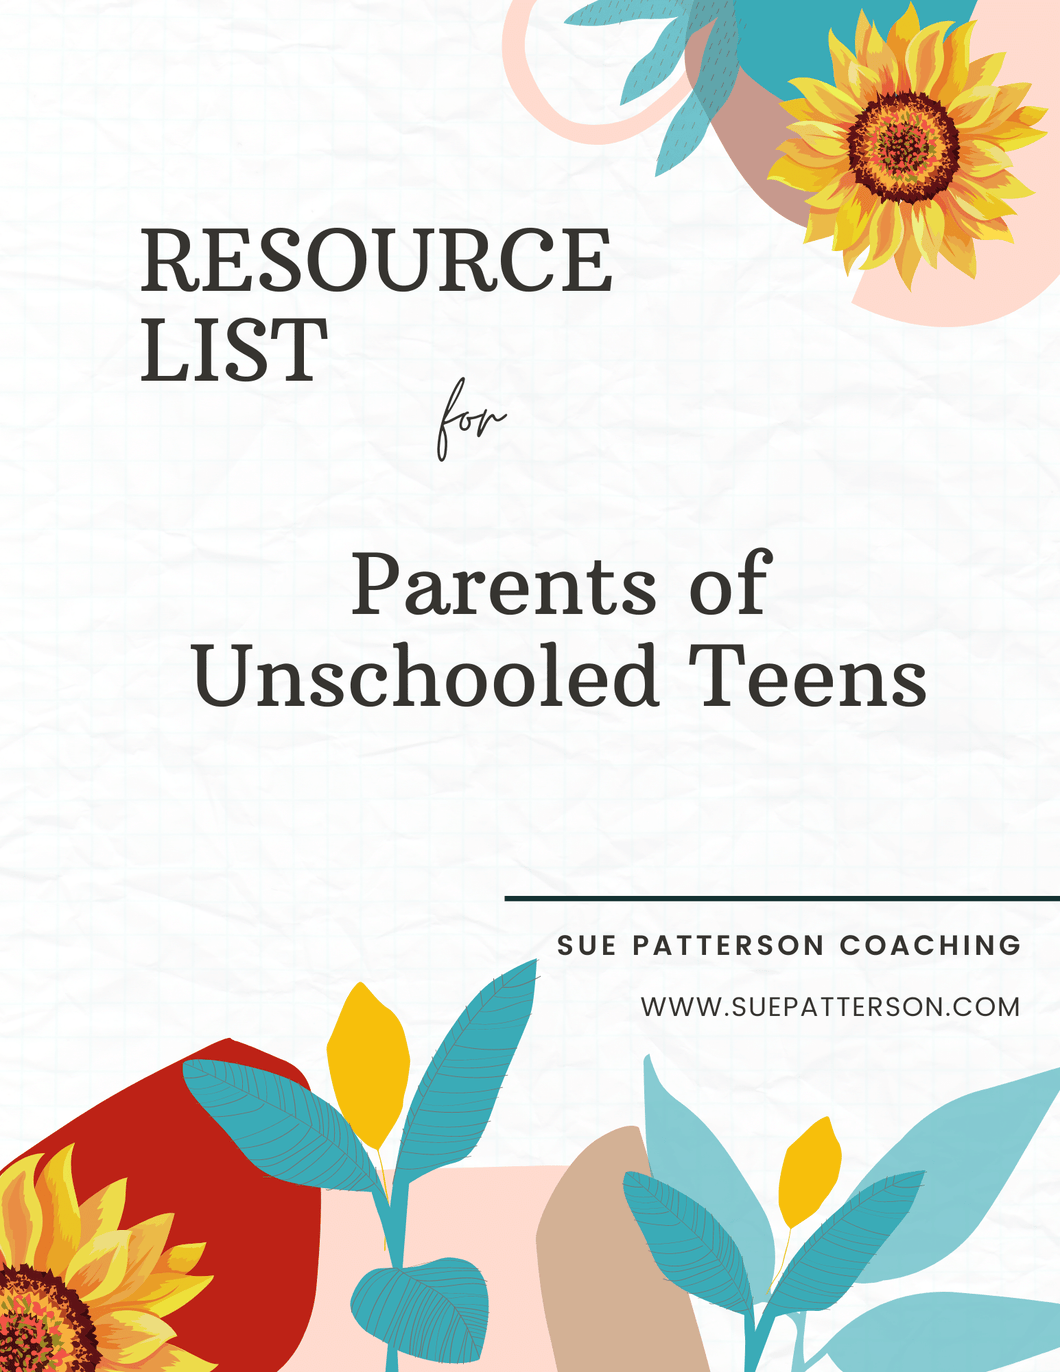 Resource Guide: Parents of Unschooled Teens